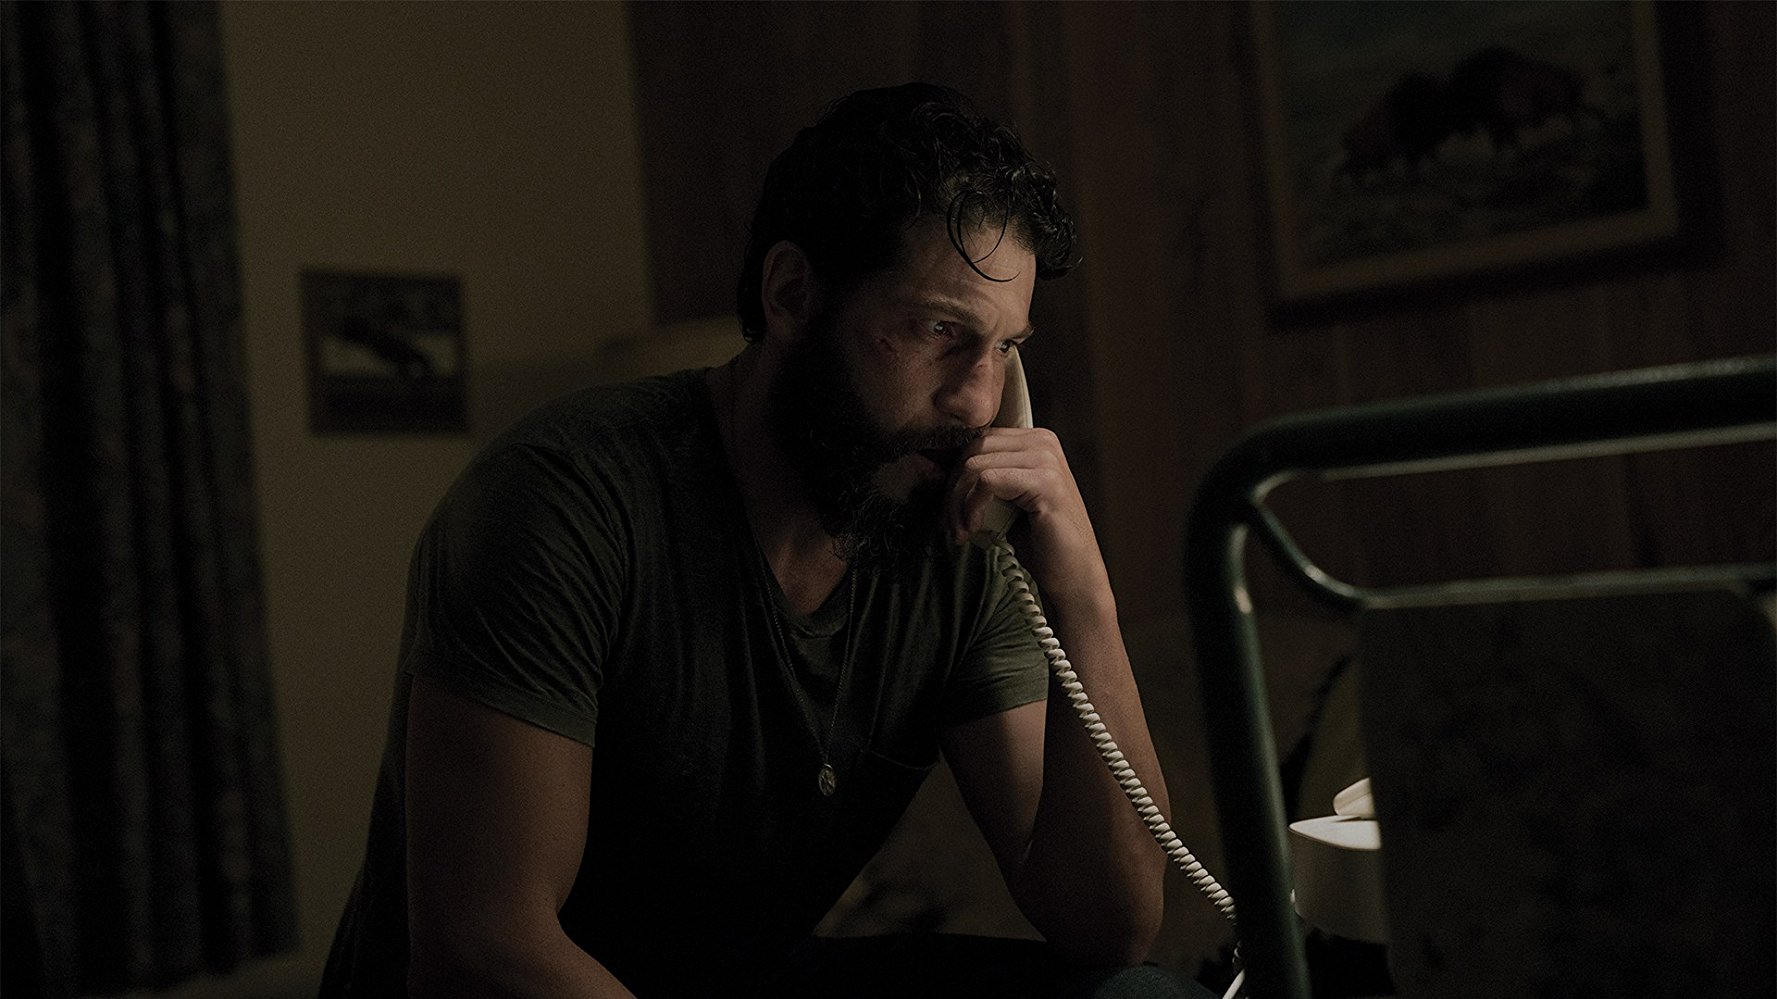 Screenshot from Sweet Virginia starring Jon Bernthal as Sam.